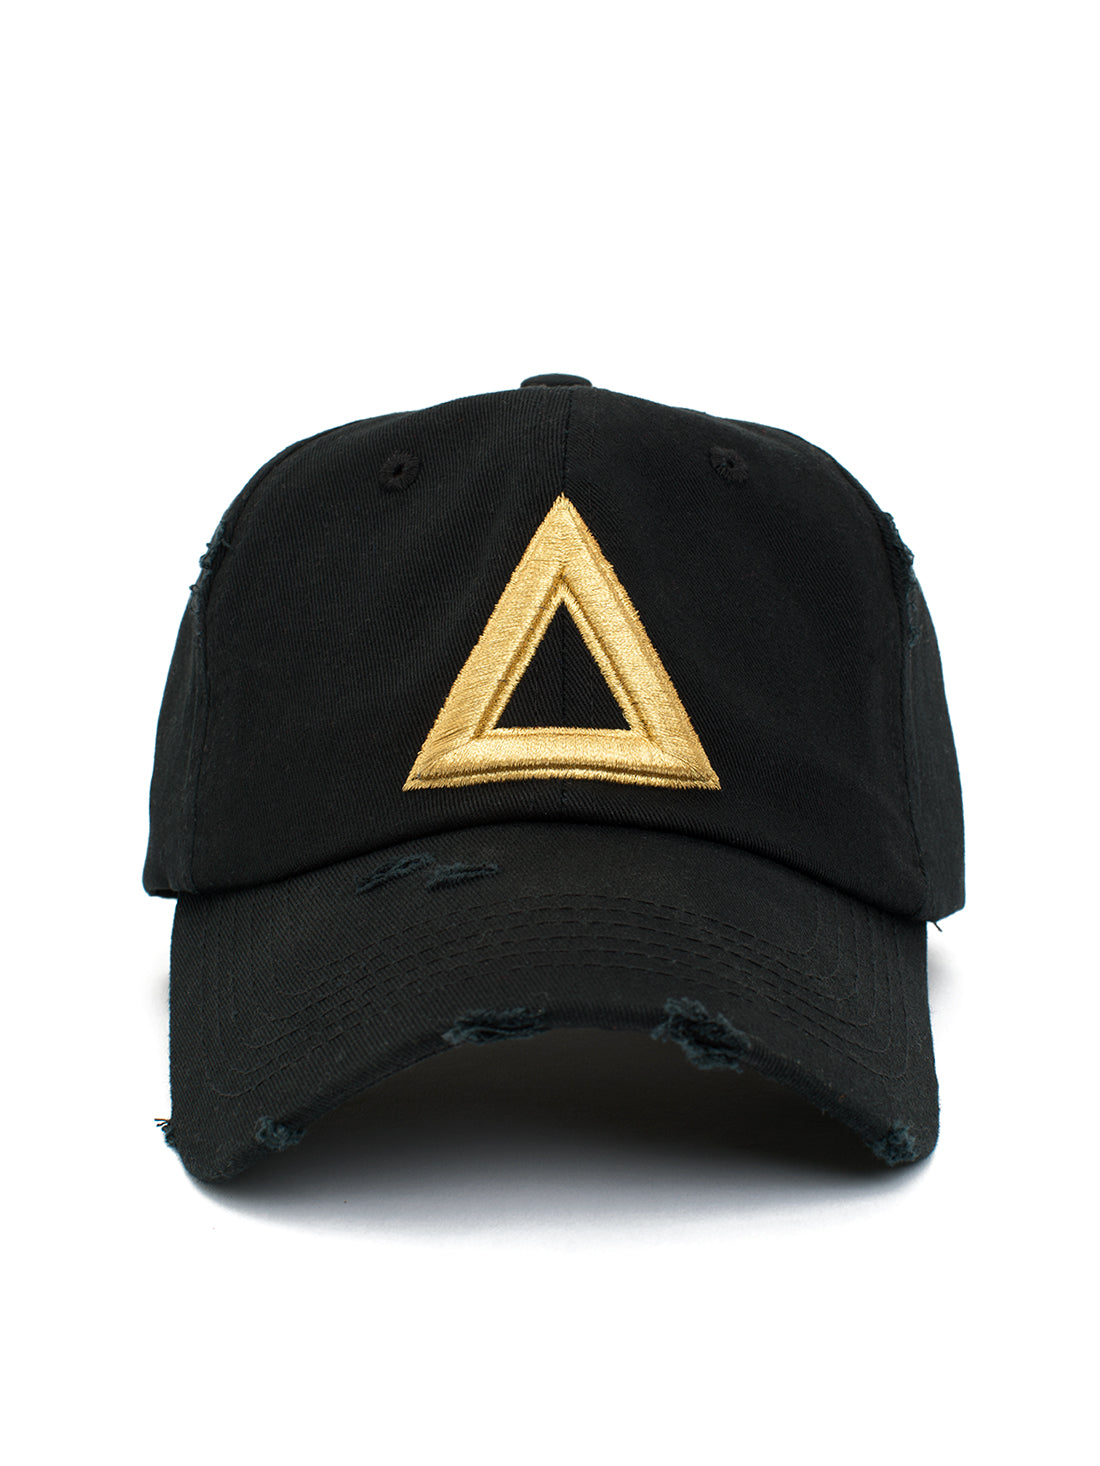 Distress Dad hat Black - Gold Tri